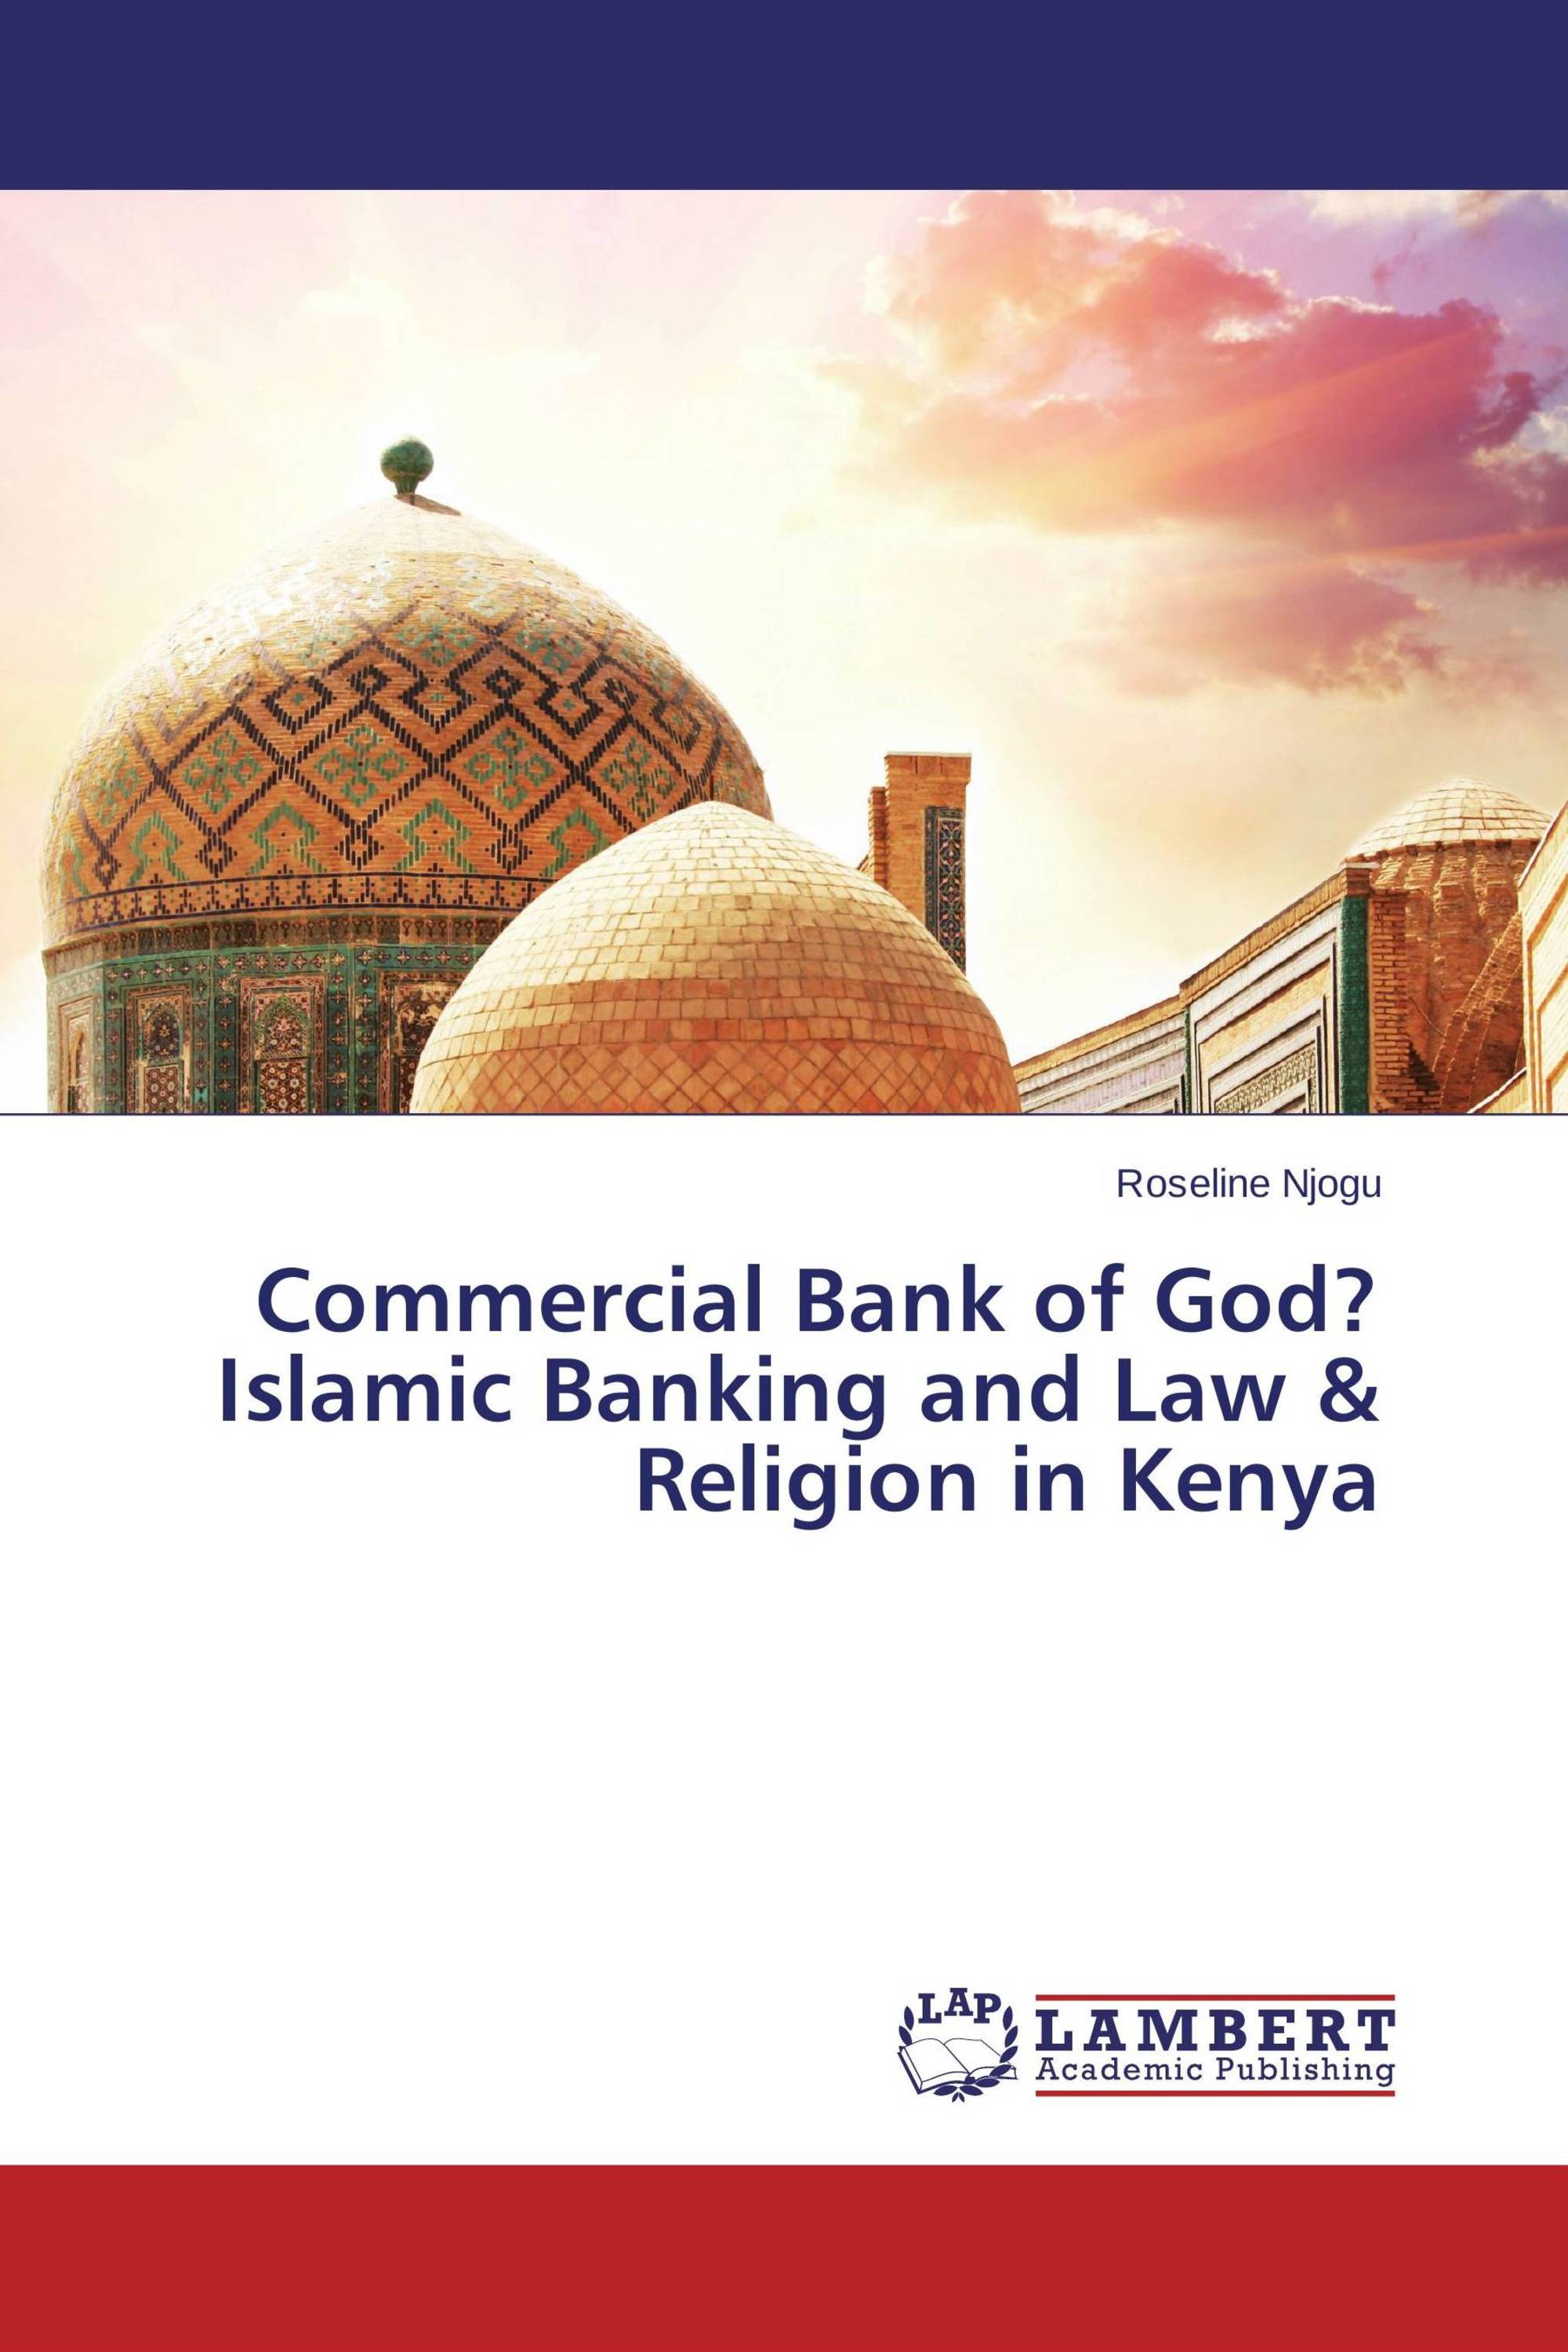 Commercial Bank of God? Islamic Banking and Law & Religion in Kenya